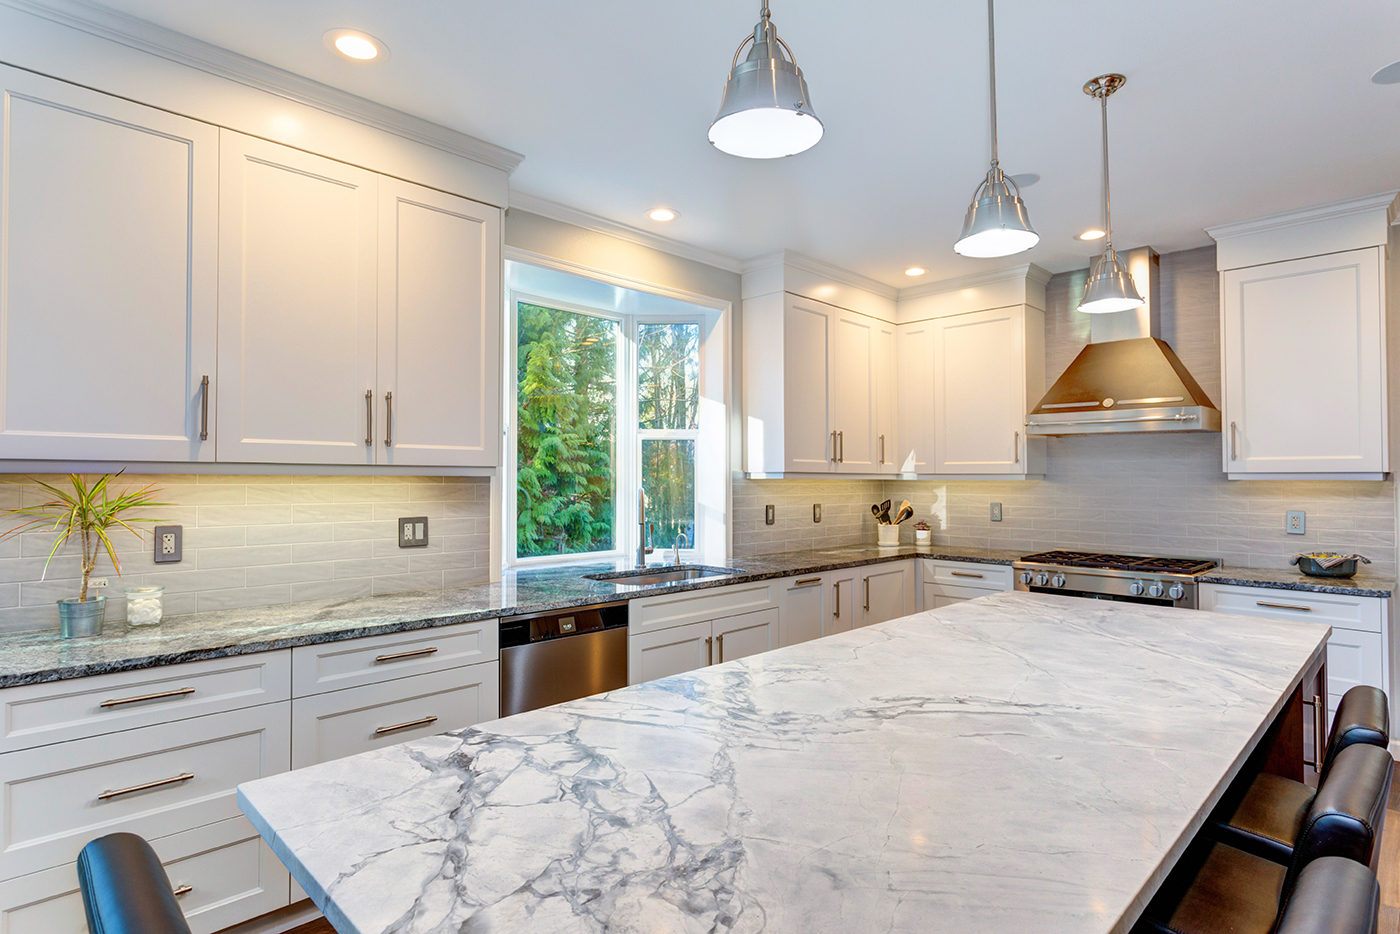 Marble Countertops Trending Again In 2019